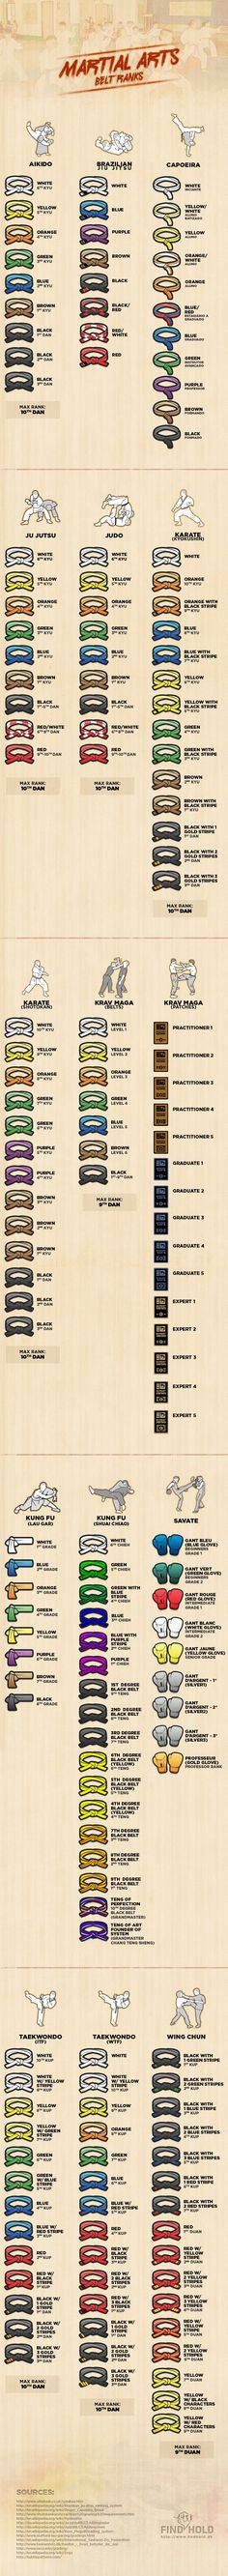 15 Martial Arts Belt Ranks Infographic | MMA Verse